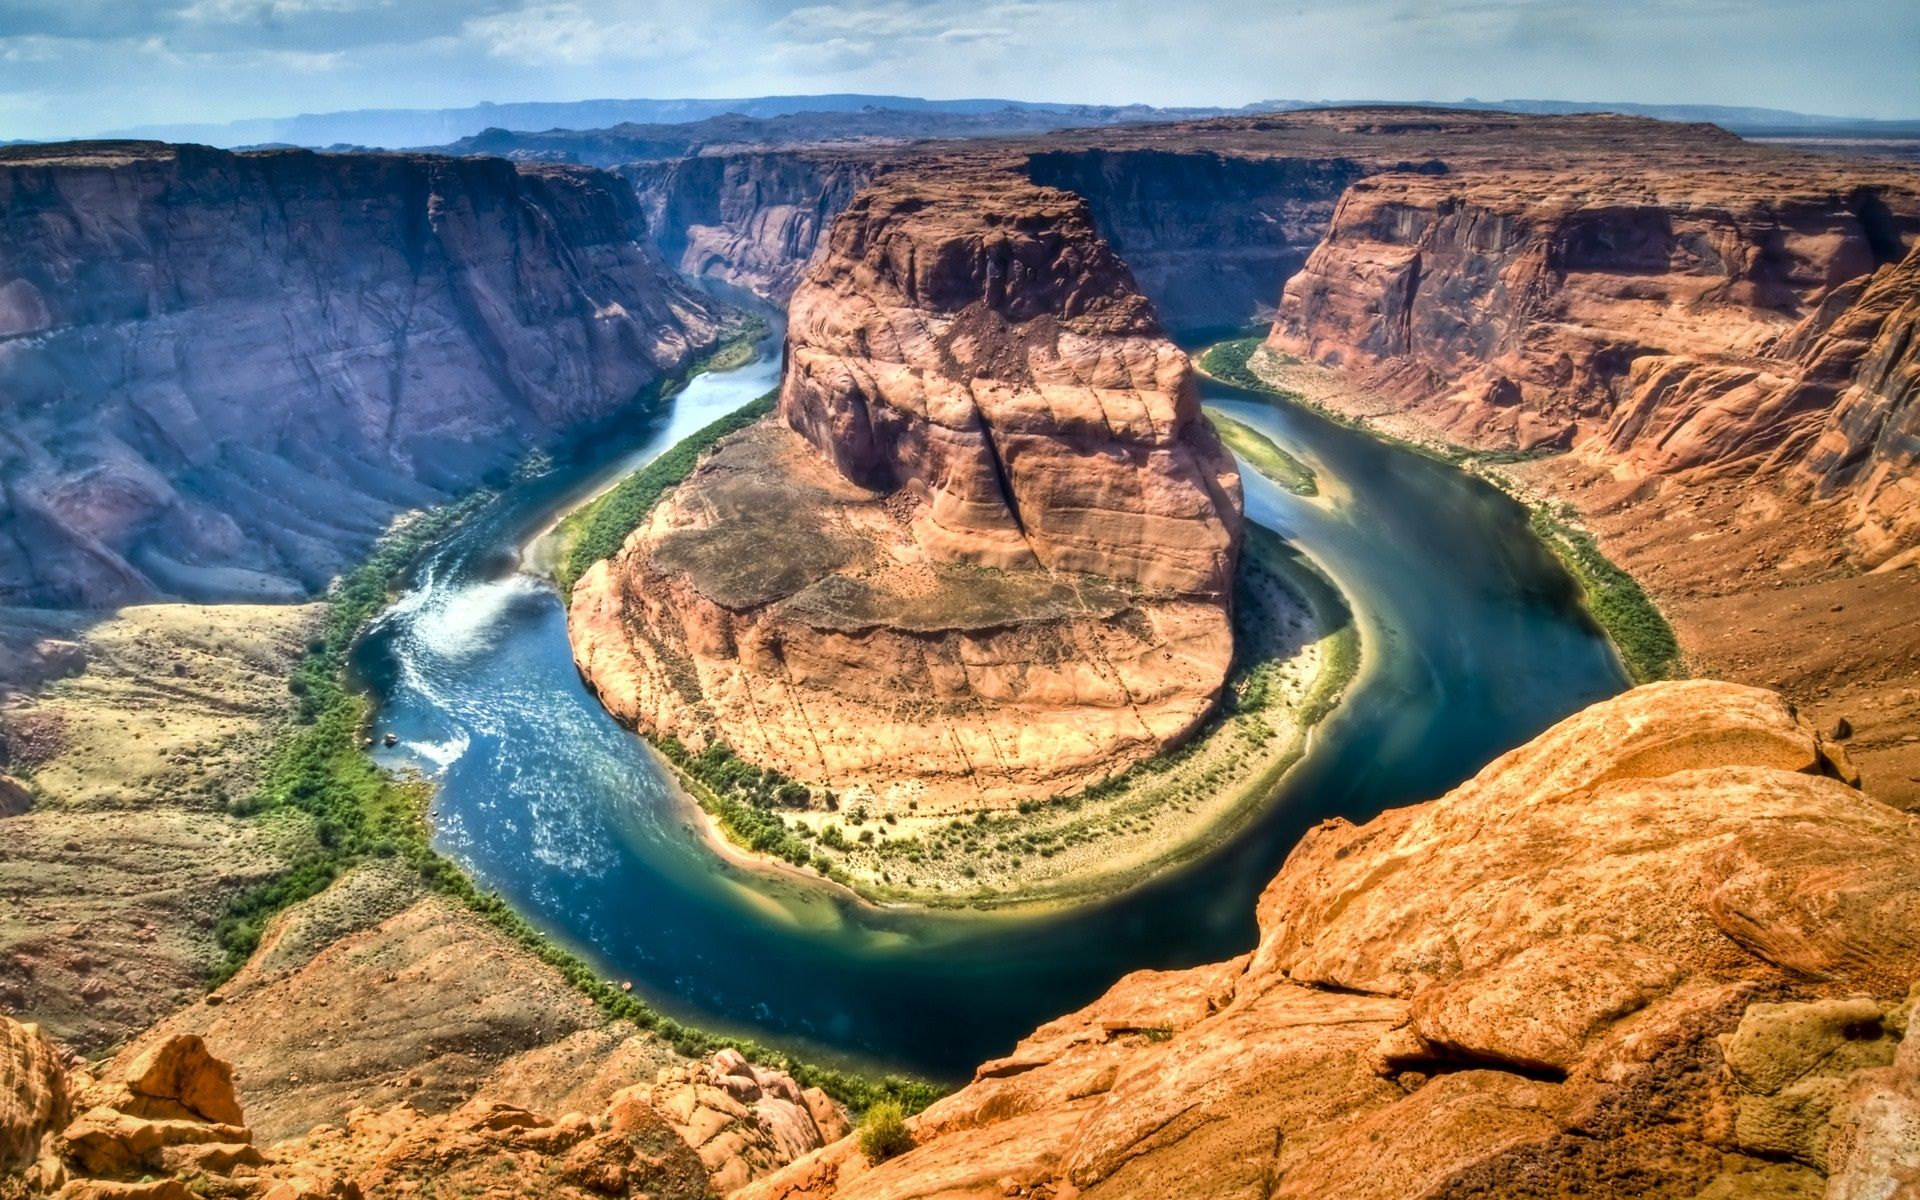 Grand Canyon Wallpapers Http Www Firsthdwallpapers Com Grand